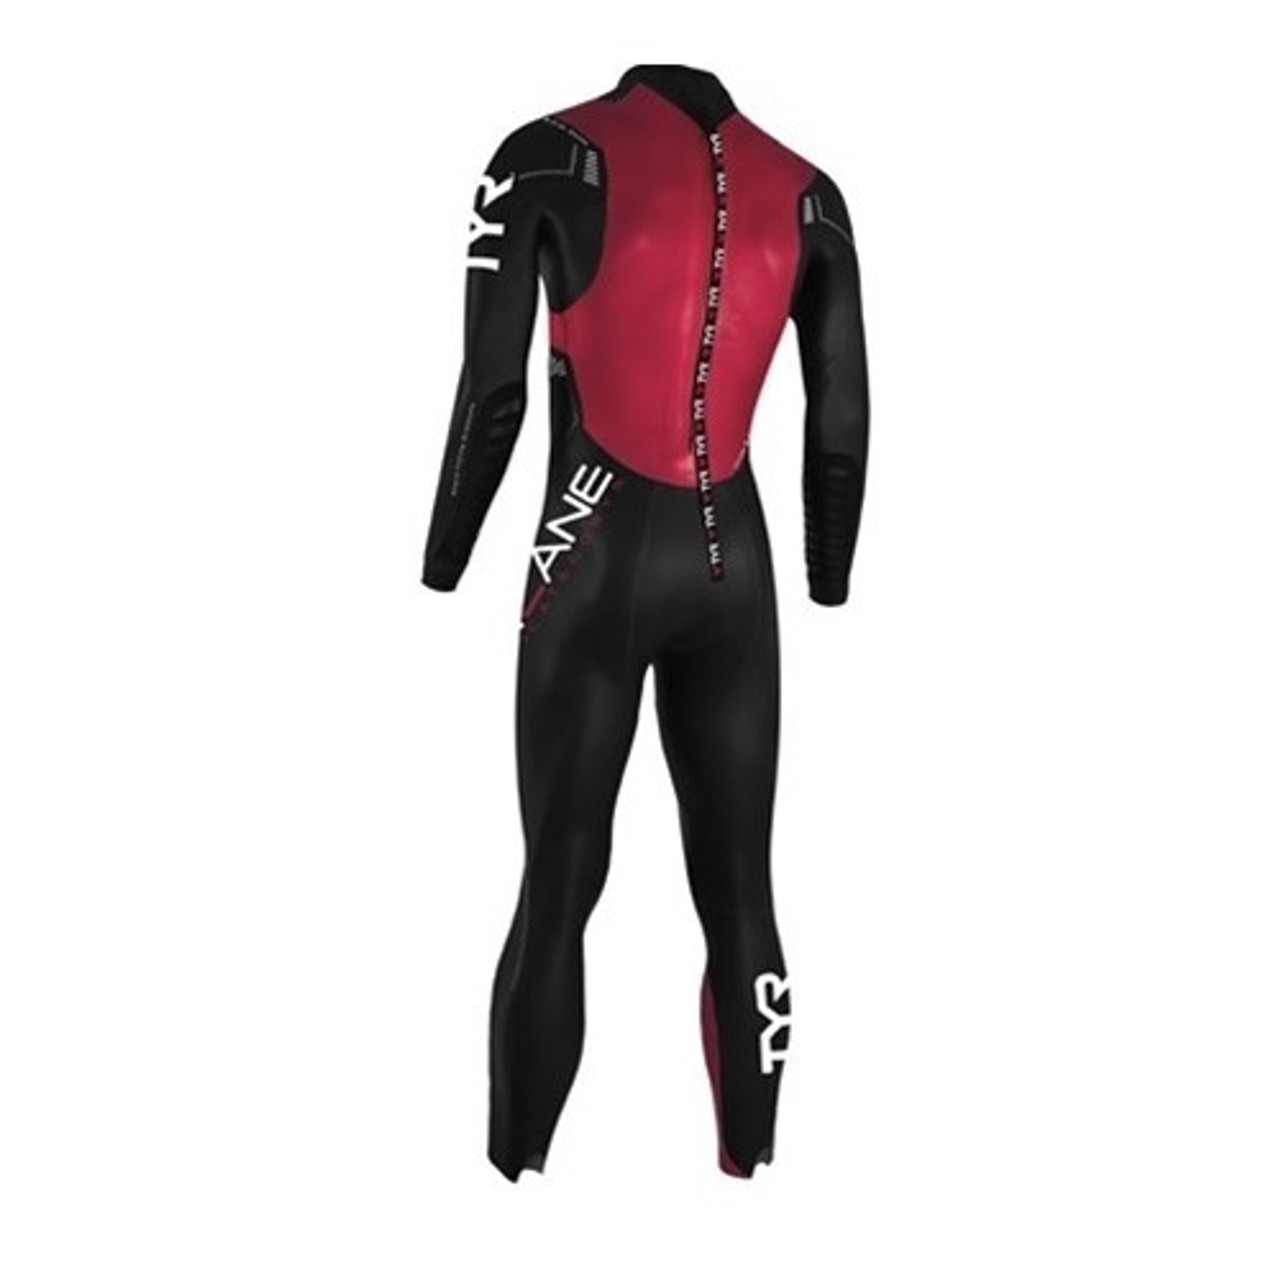 203eb1ddb0704 REPAIRED  TYR Men s Hurricane Category 5 Wetsuit - Size XL ...